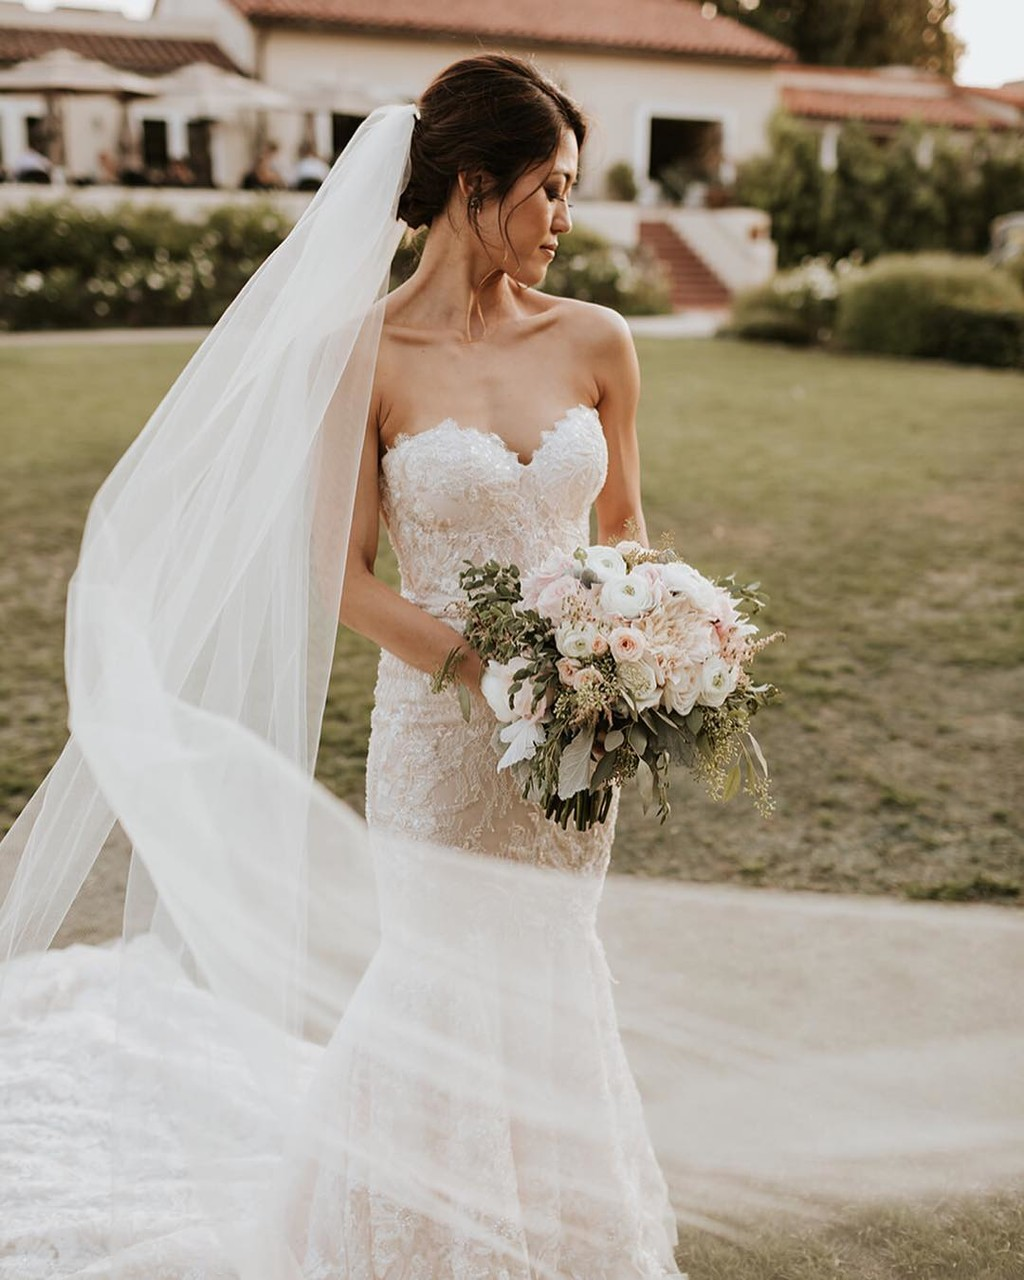 That sway in her veil...was it the wind? Or a really great bridal assistant? 😉 Did you know all of our packages include a bride